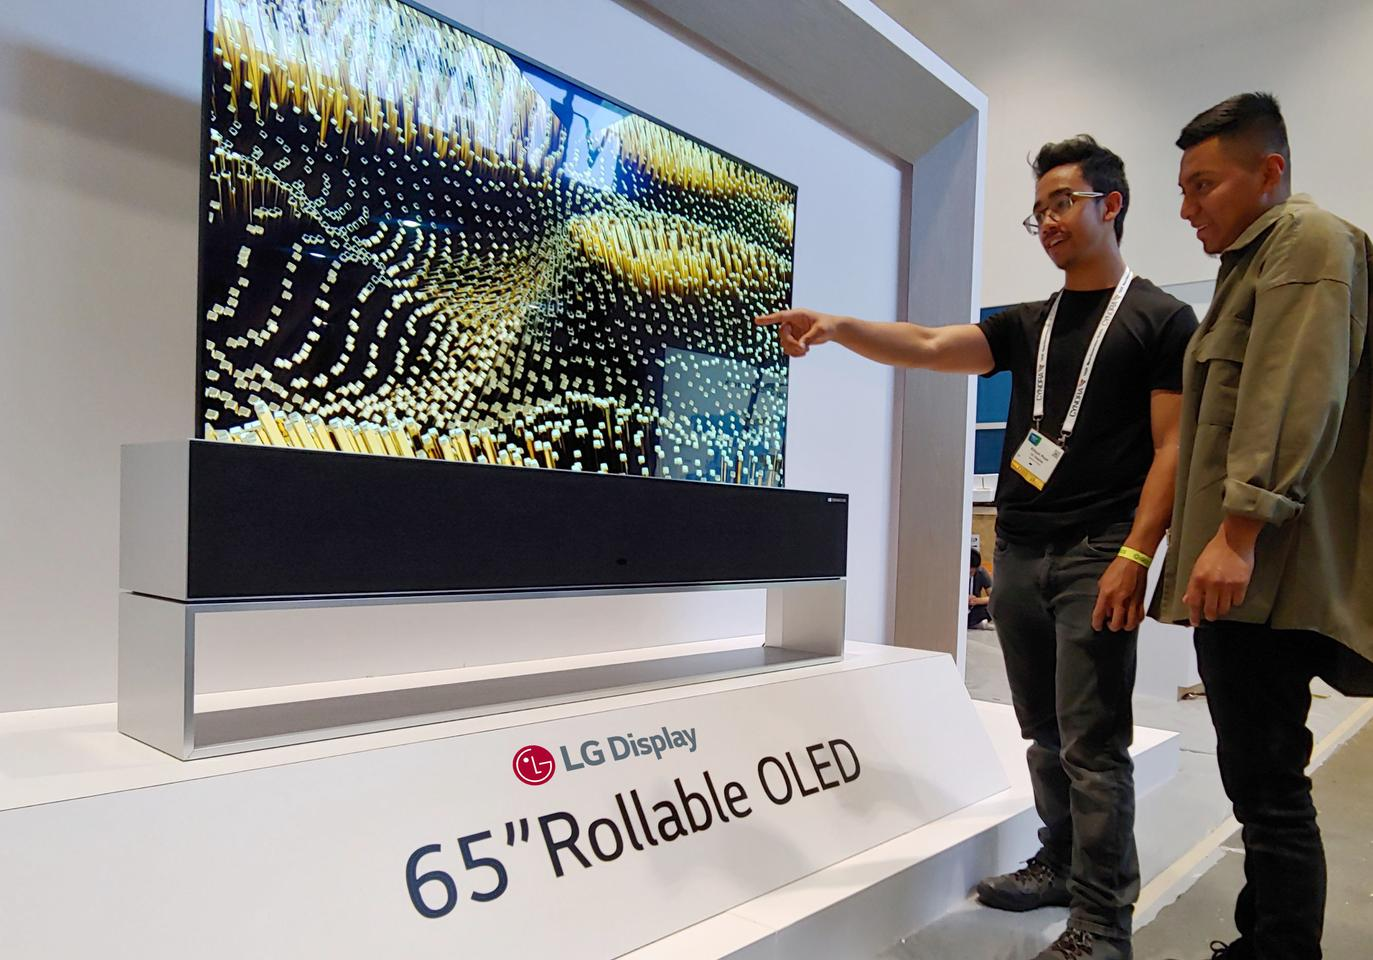 Lg Puts Oled In Airplane Cabins Installs Rollable Tv In The Ceiling